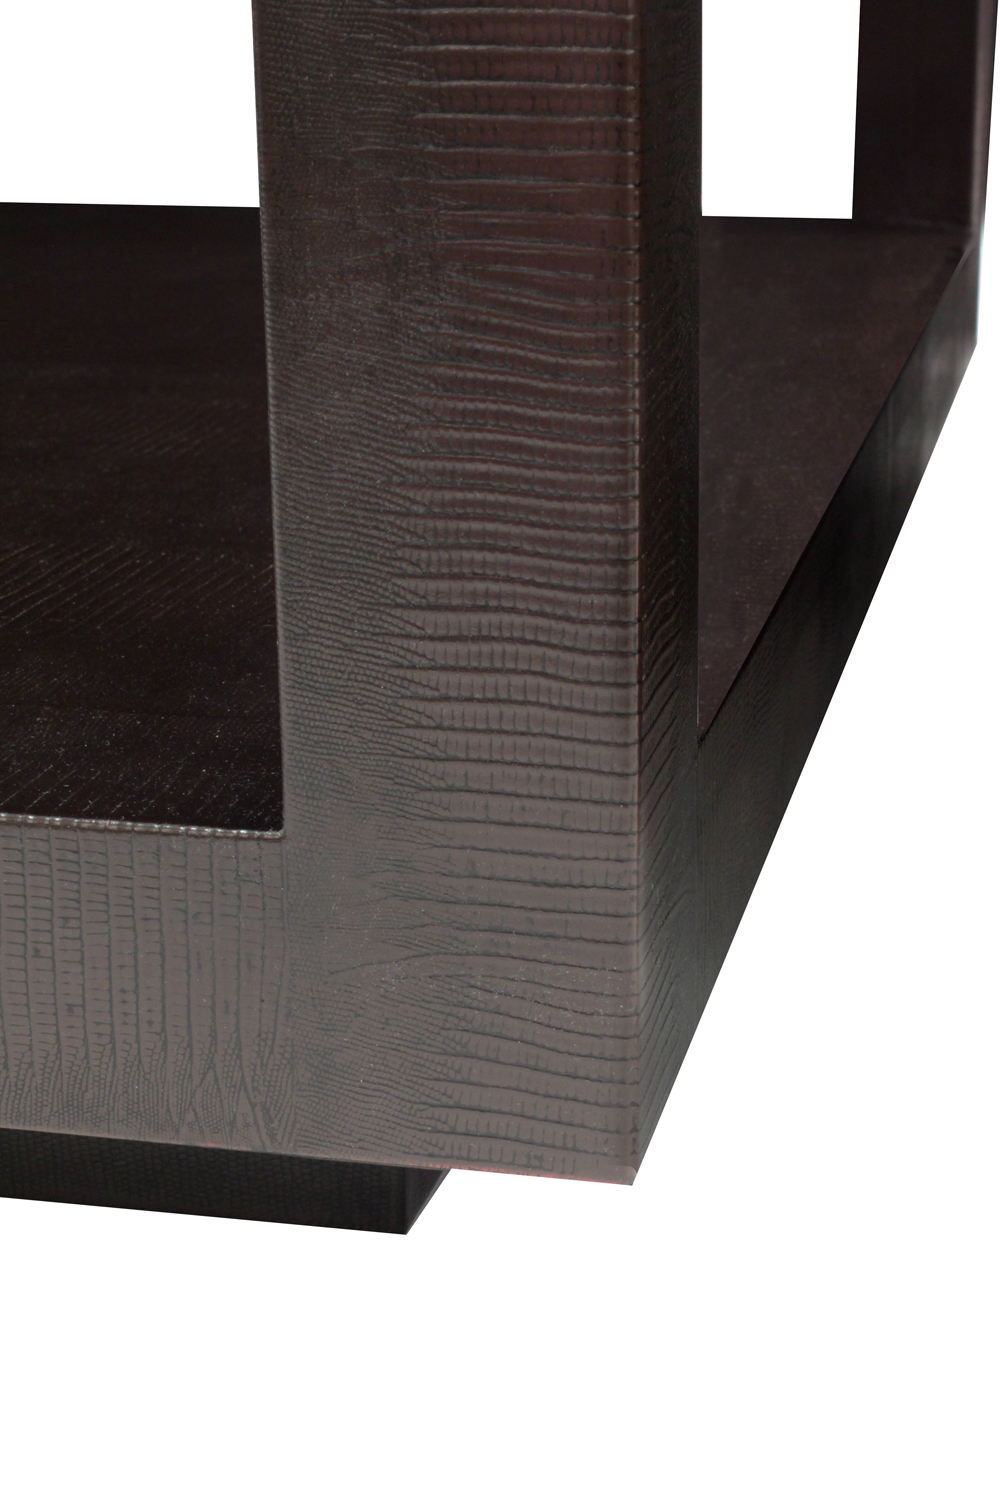 Springer 85 2tier emb lizard coffeetable302 detail2 hires.jpg